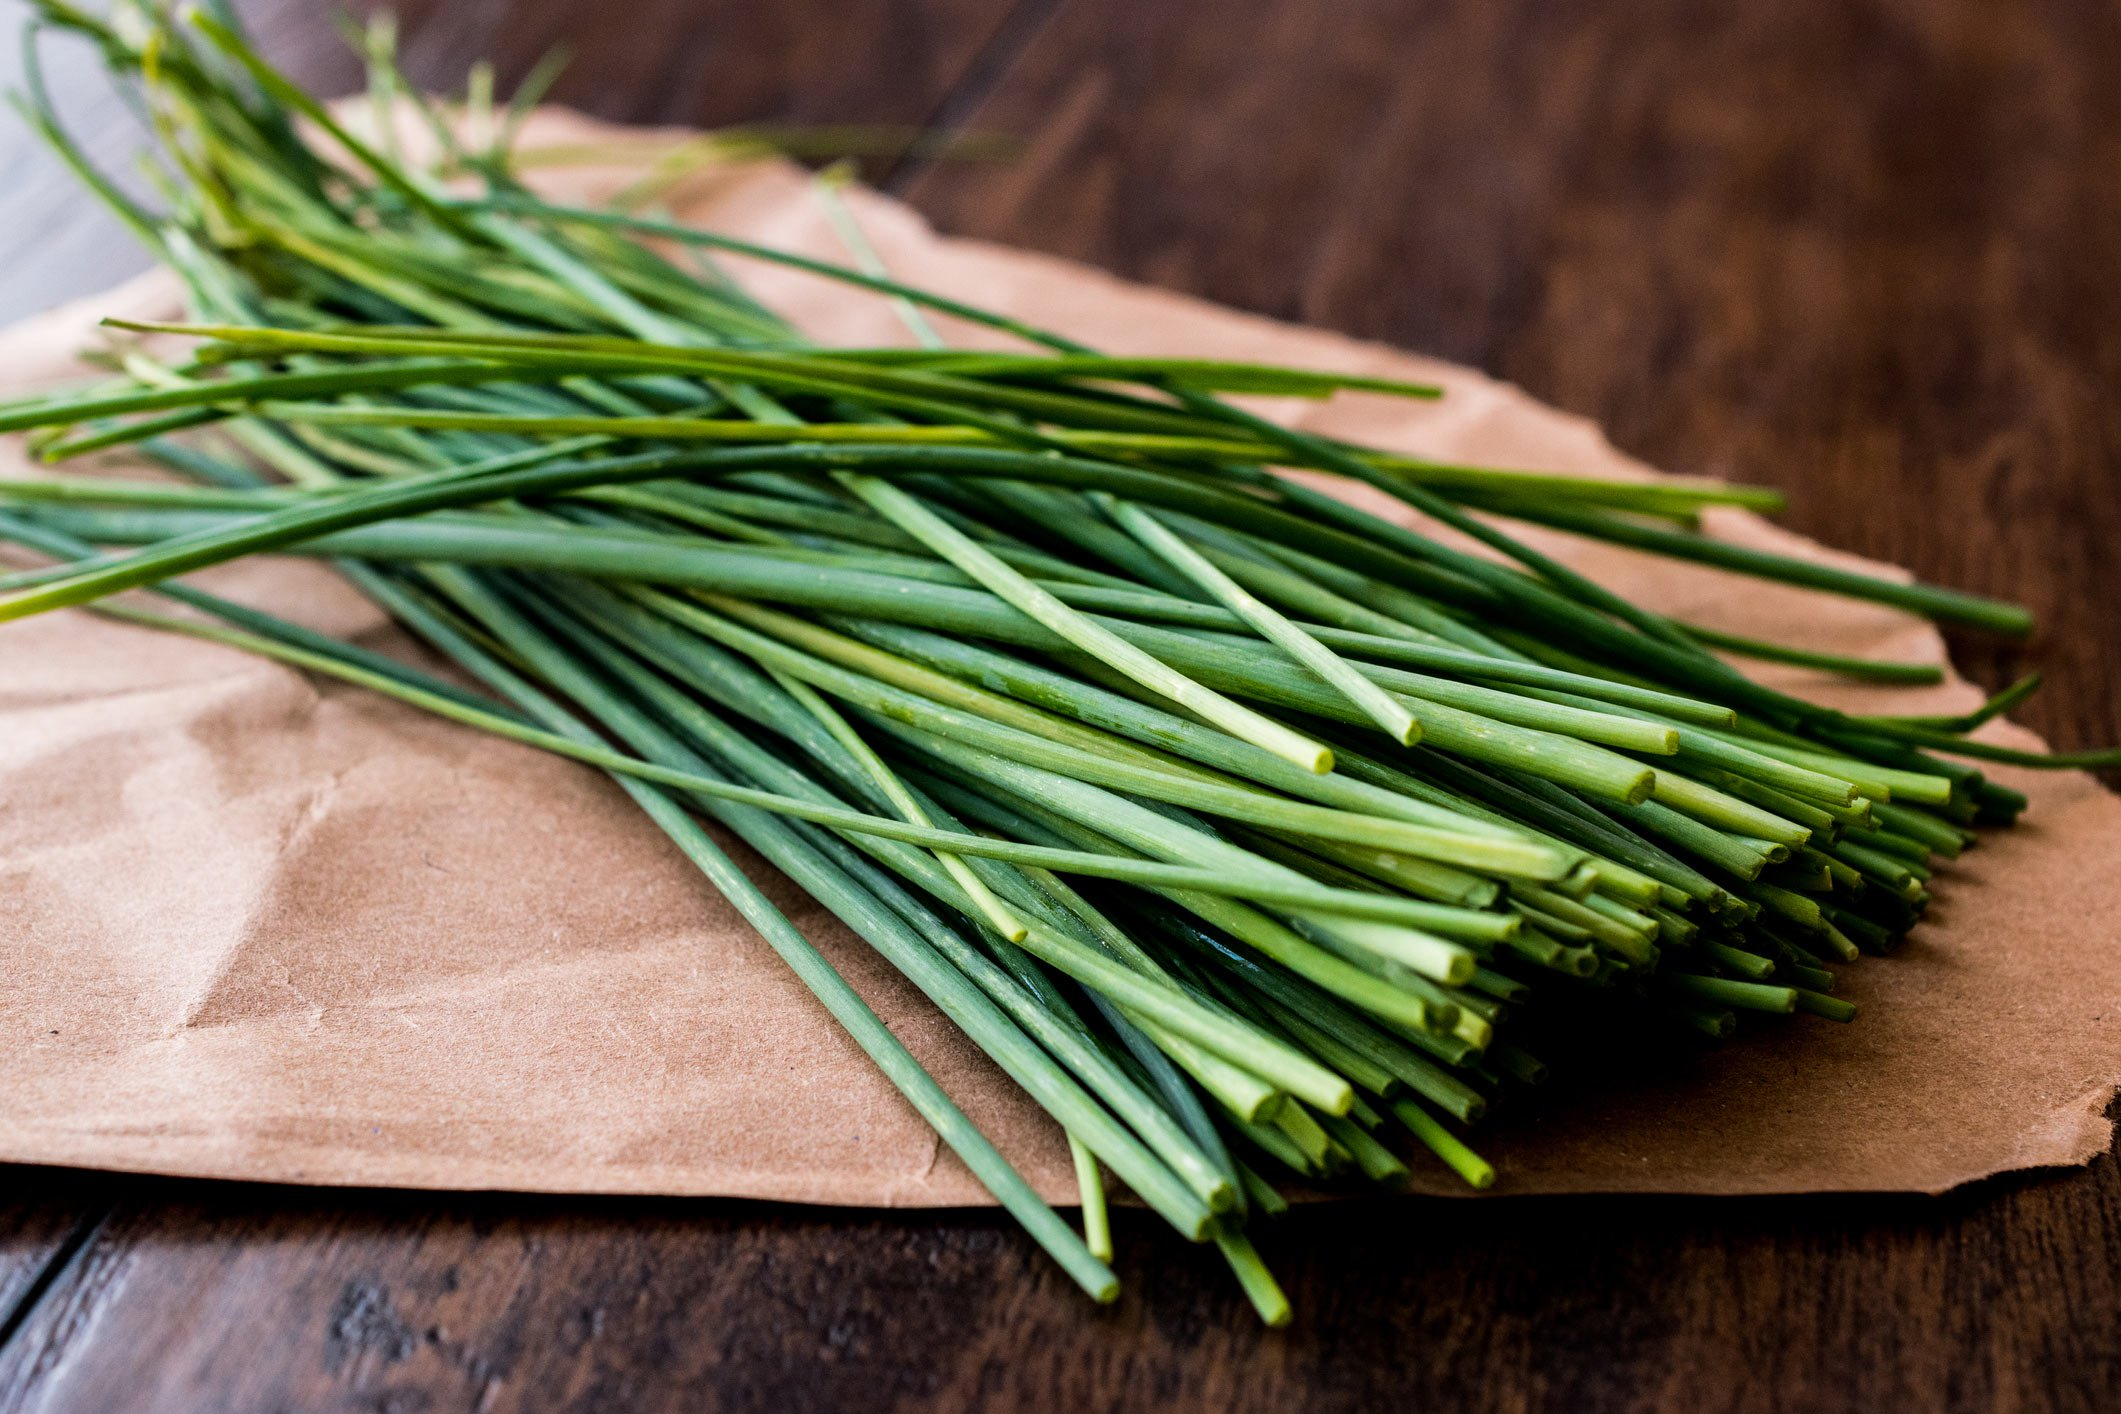 Allium vegetables: Chives